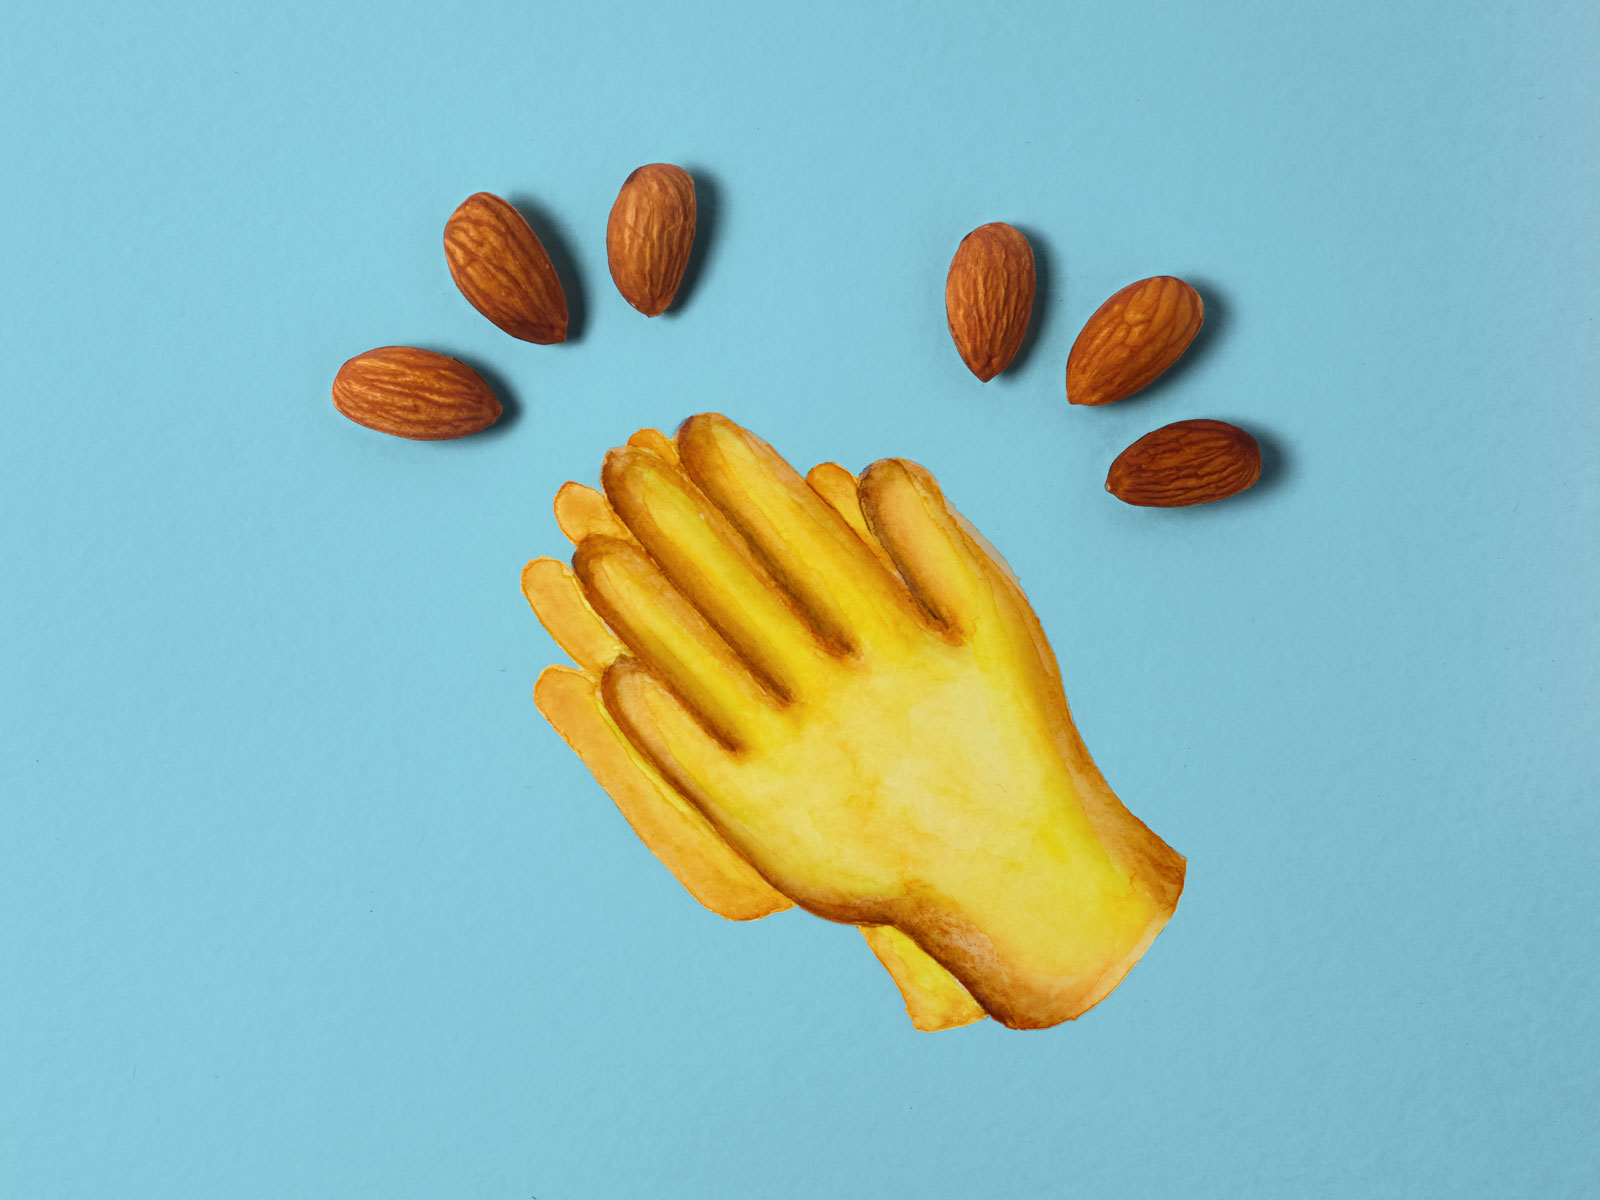 Petition Seeks to Give Almonds Their Own Emoji